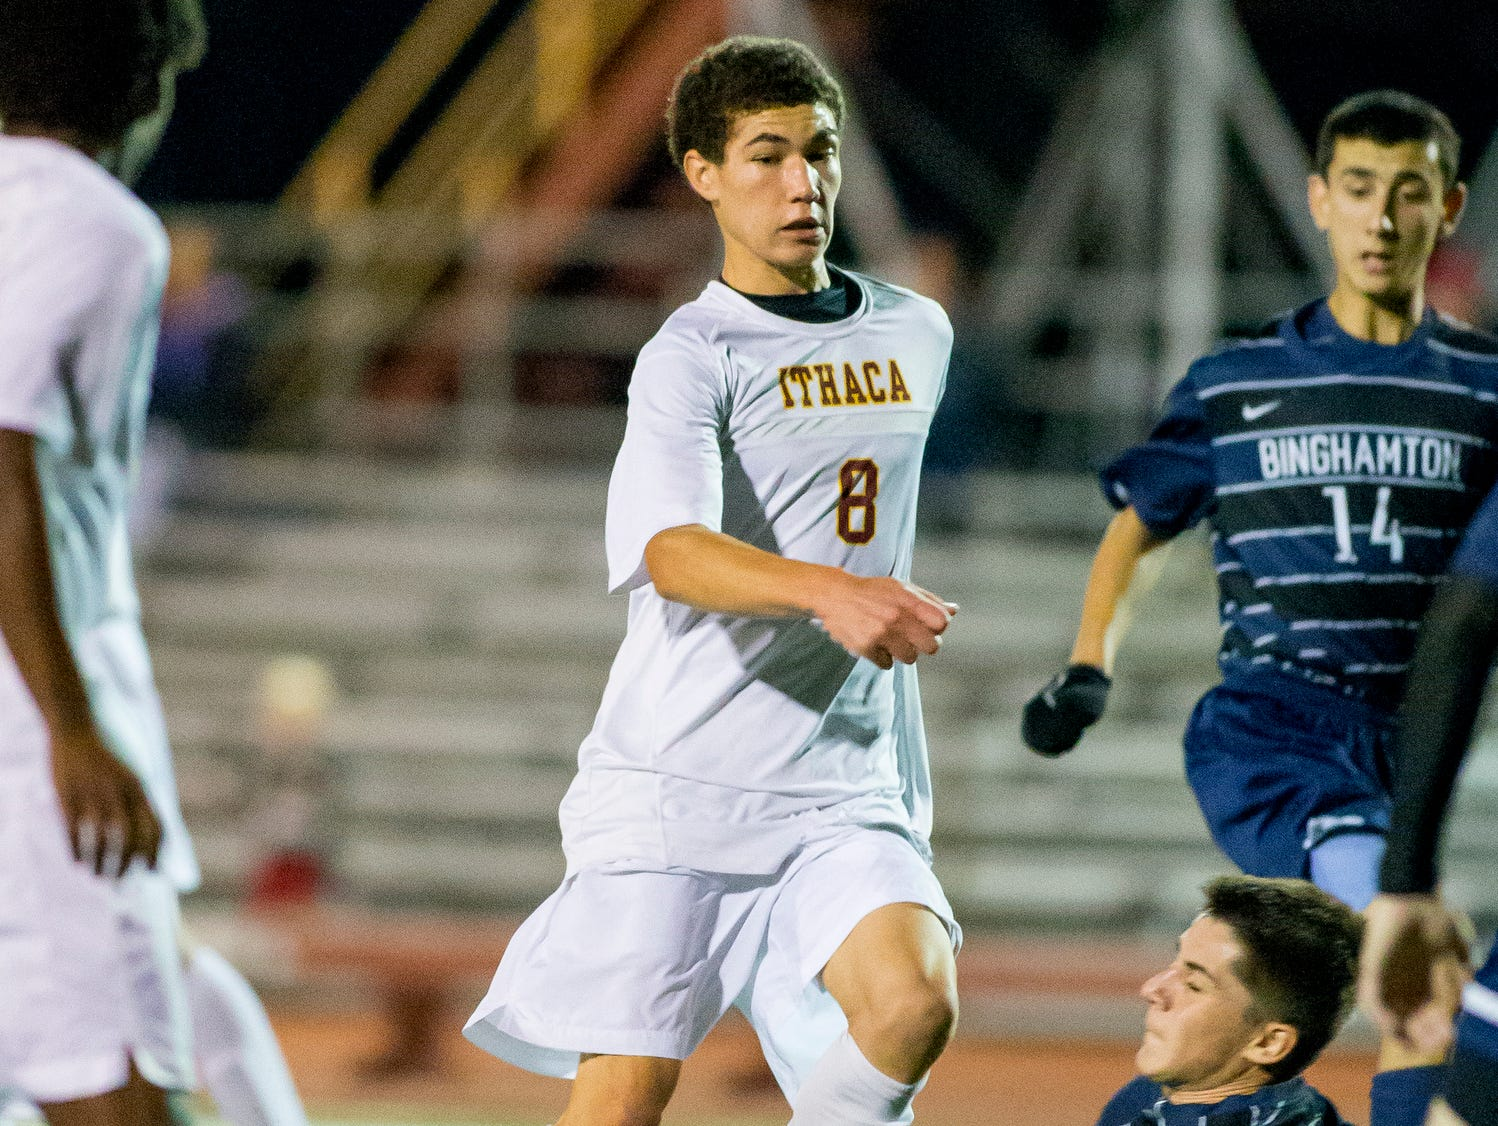 Ithaca senior Mason Wolff is pictured on Oct. 7 against Binghamton, in a game won by the Little Red, 7-0. Ithaca hosts Oneonta in the Southern Tier Athletic Conference semifinals at 1 p.m. Saturday at Moresco Stadium.